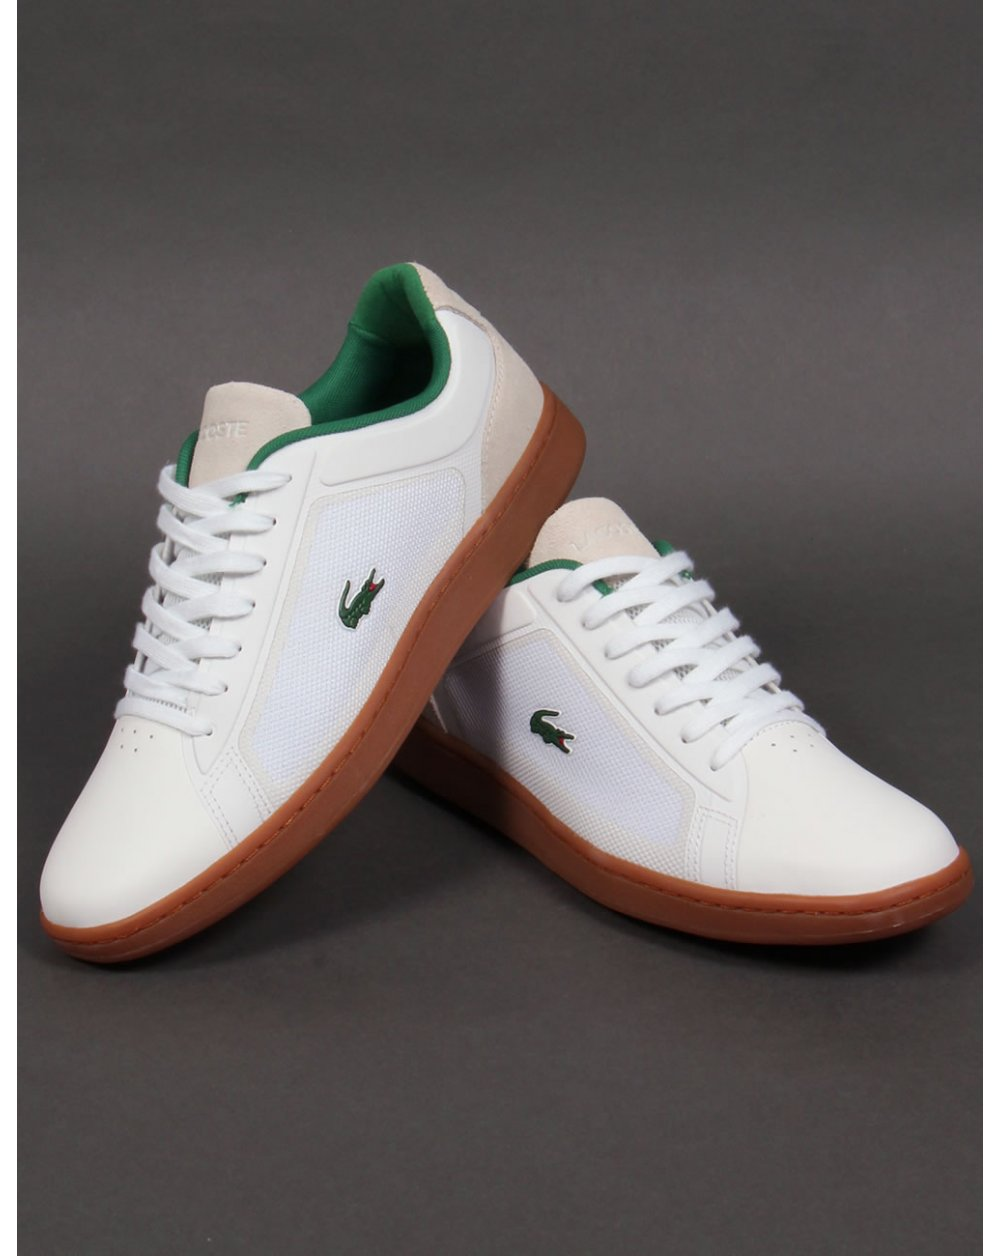 Lacoste Endliner Trainers White/gum